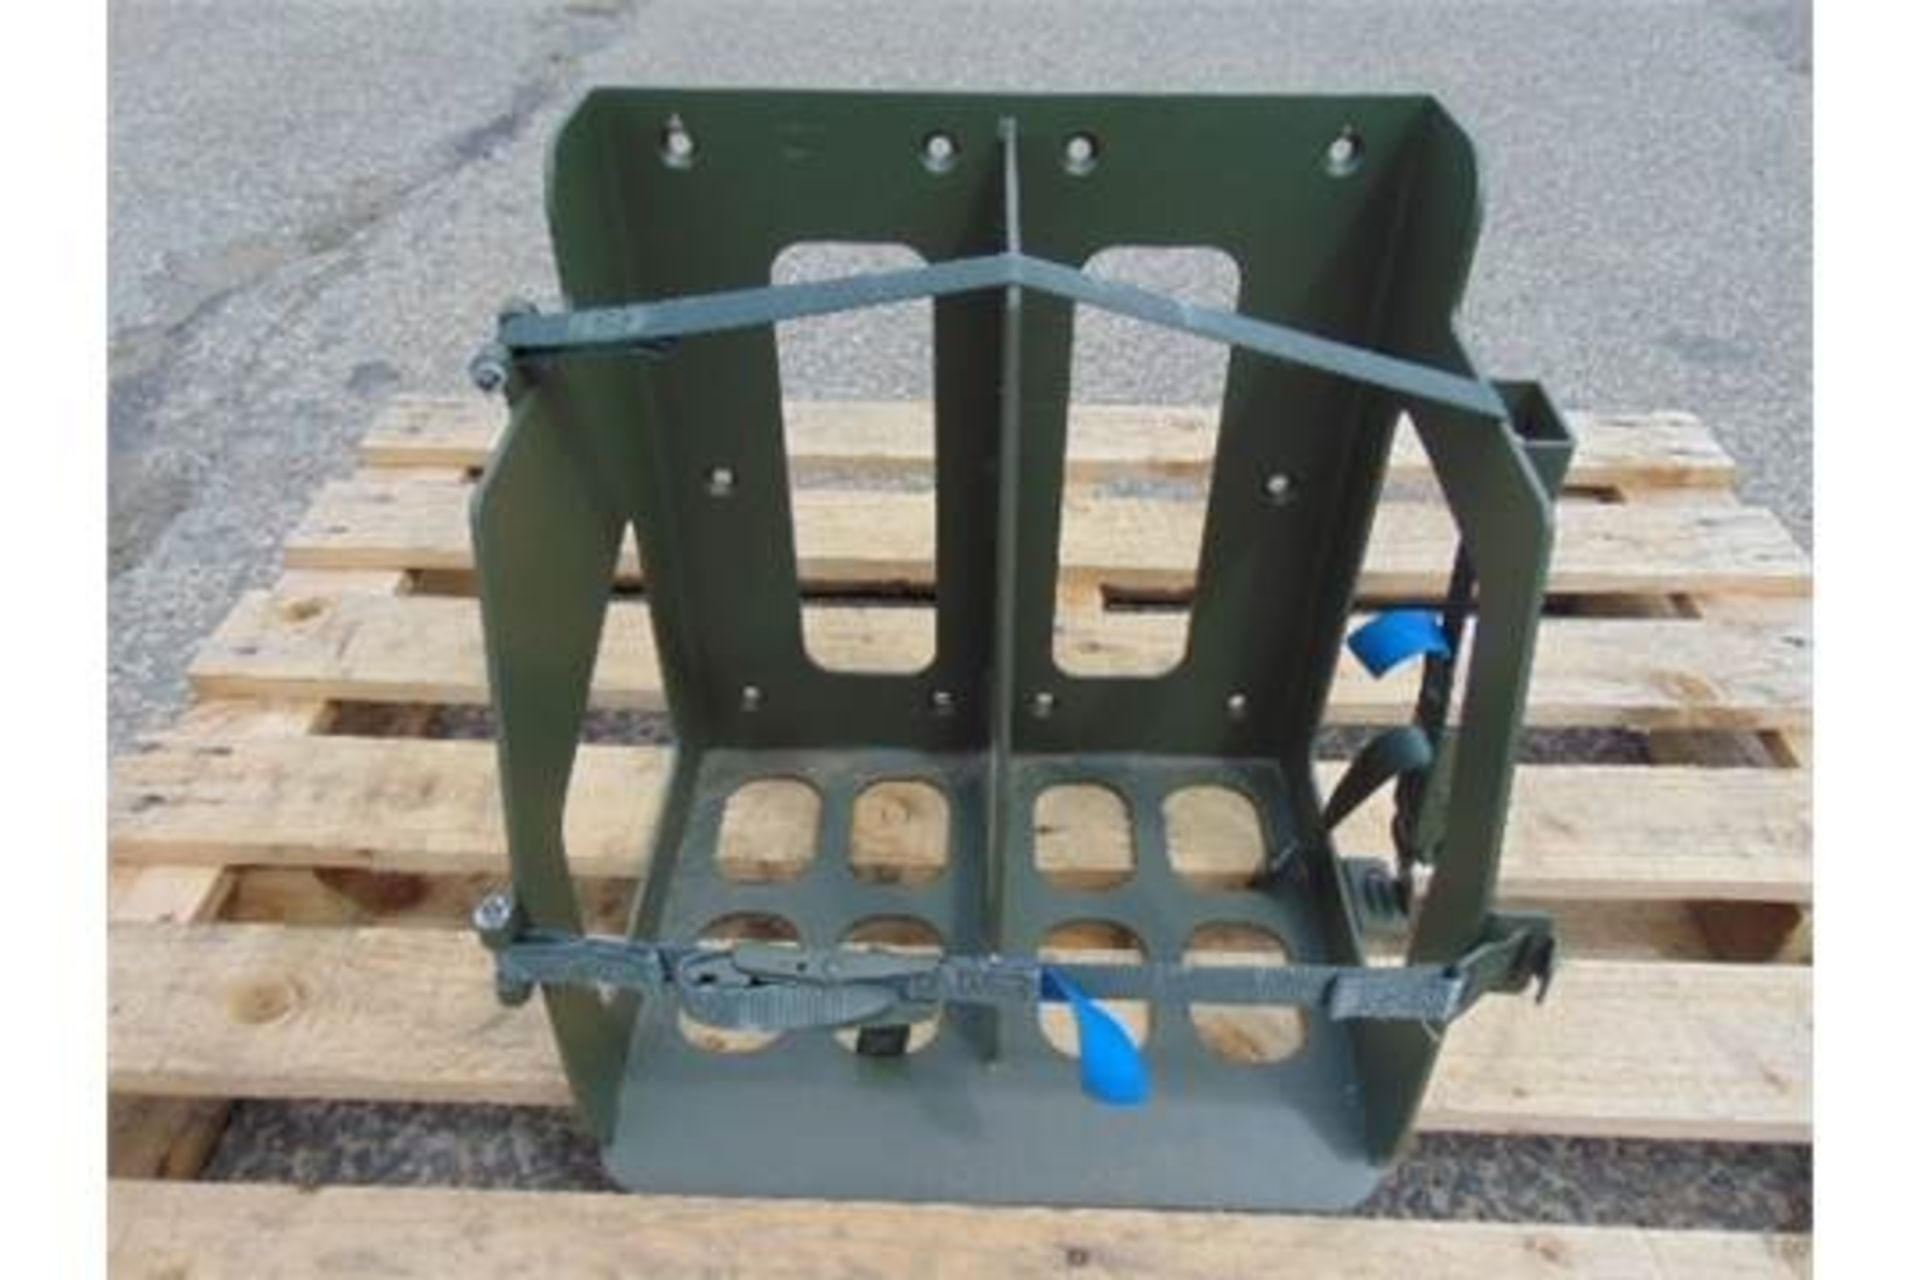 Lot 27342 - Vehicle Twin Jerry Can Rack